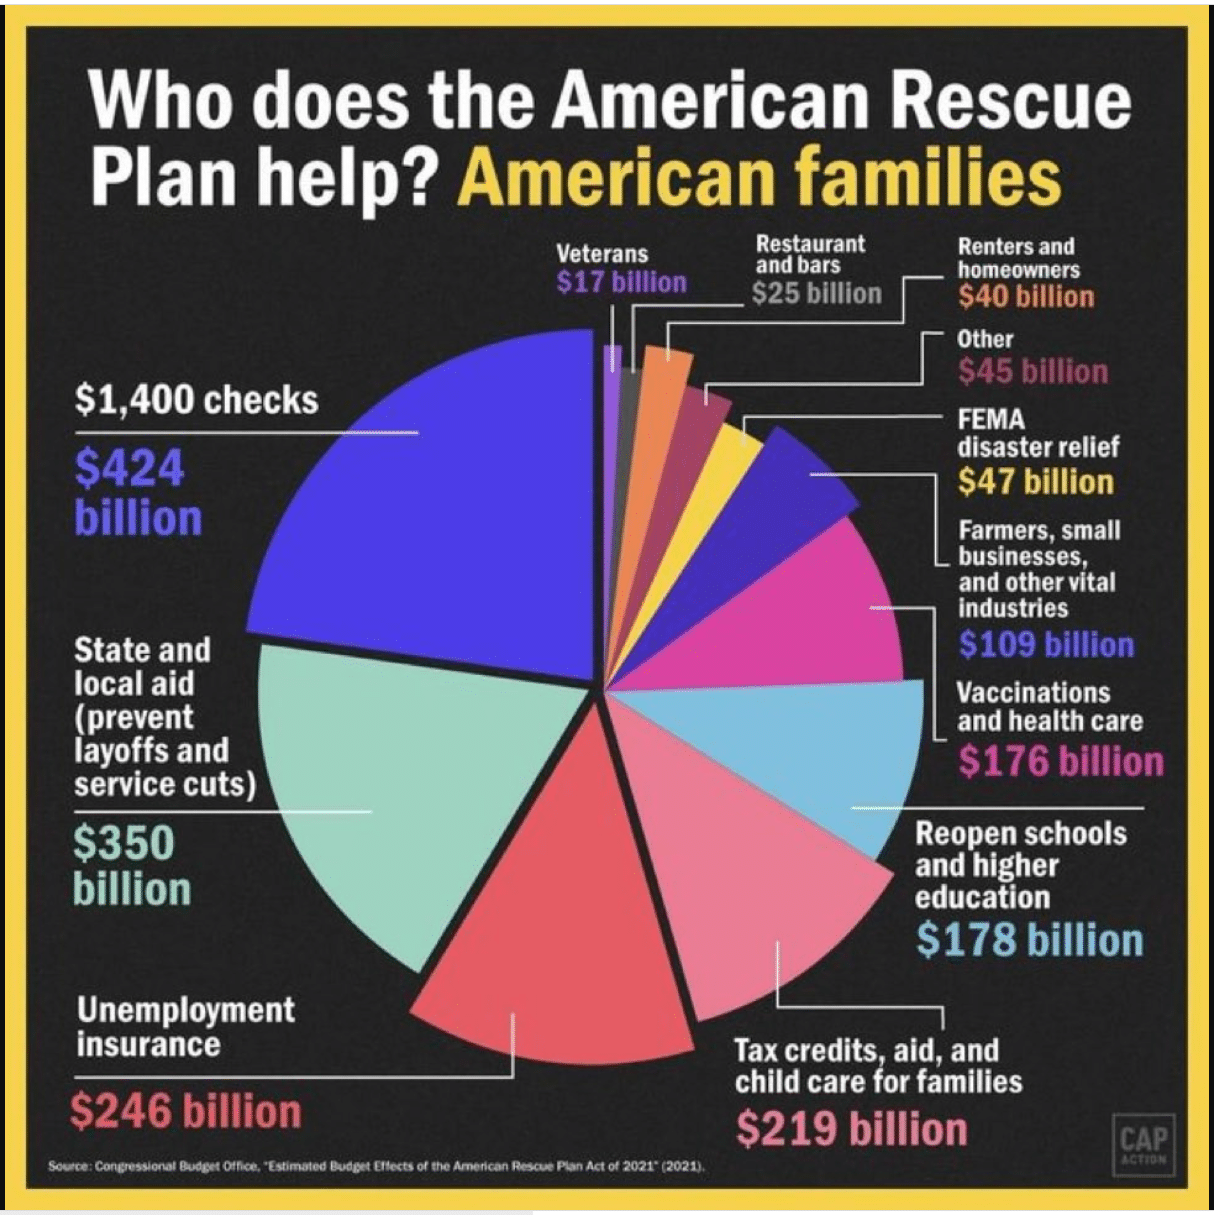 Who does the American Rescue Plan help?